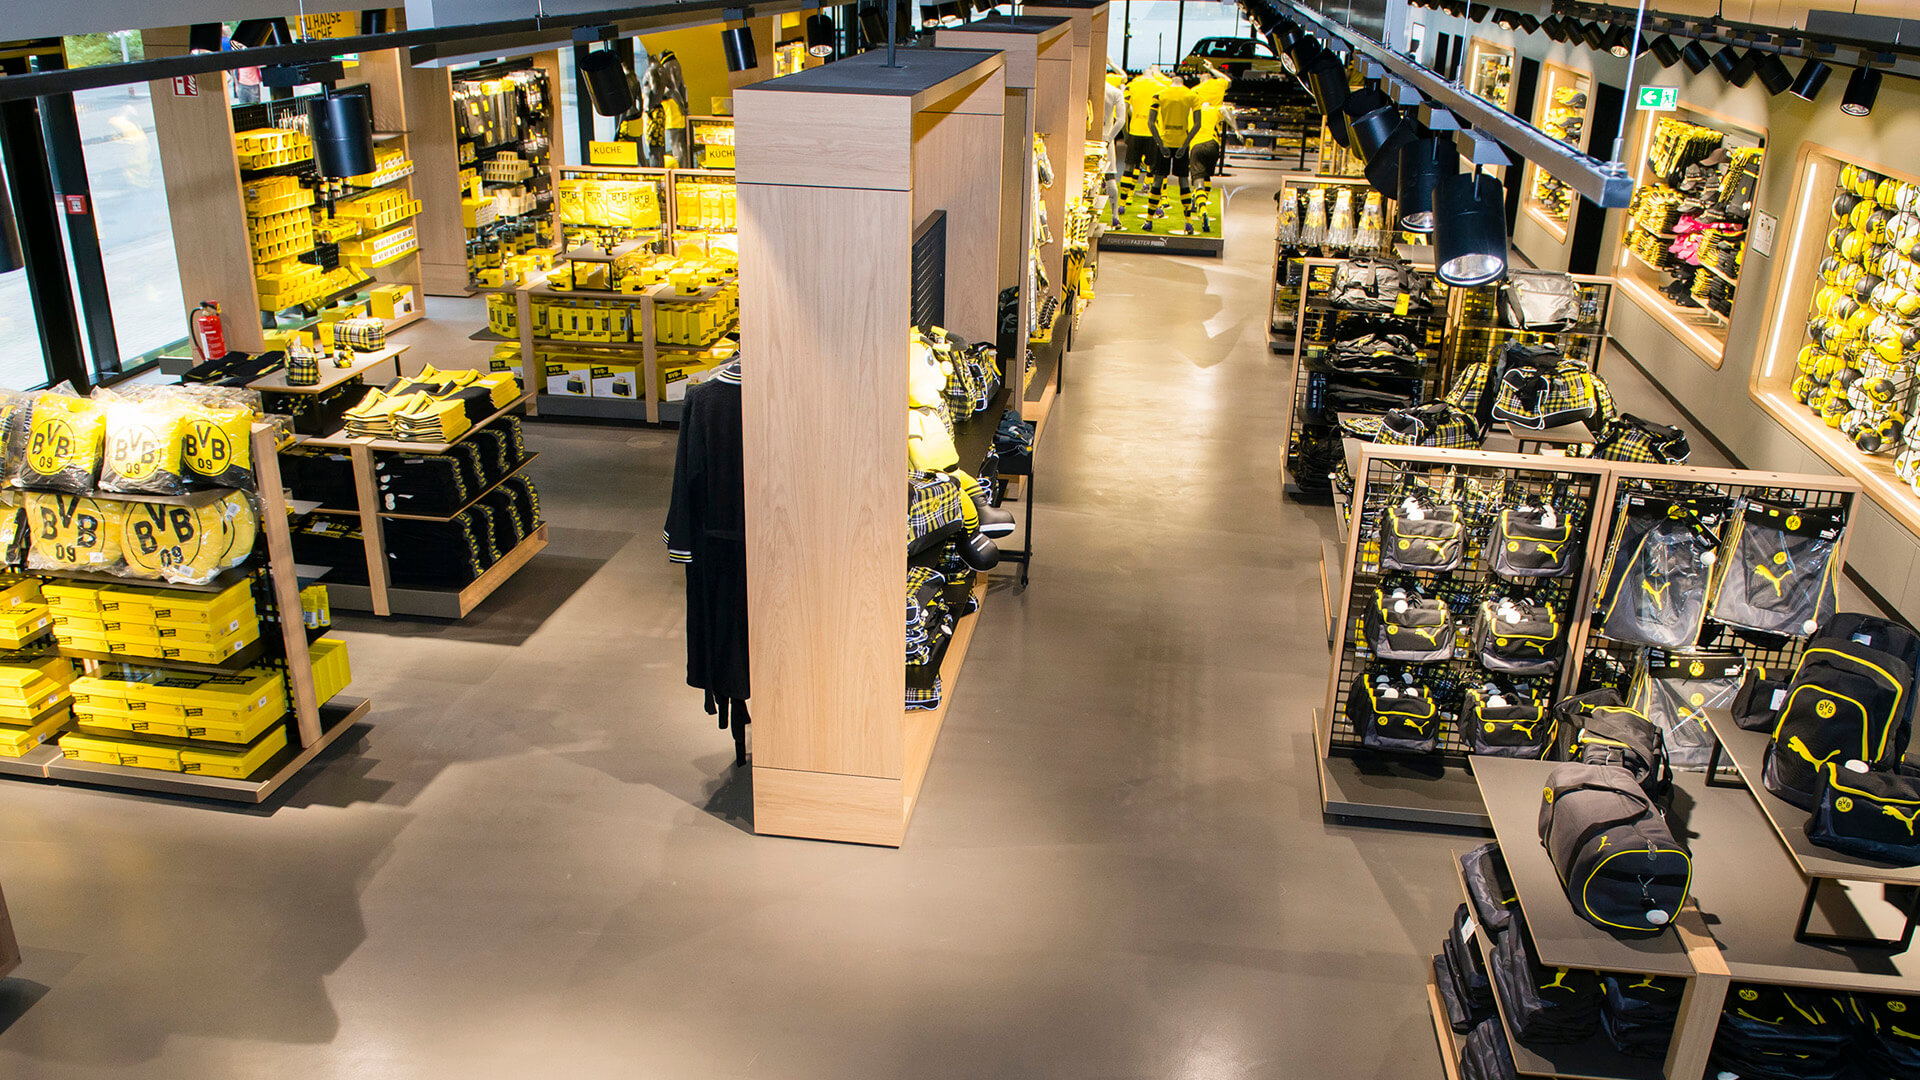 BVB shop inside with shelves and articles